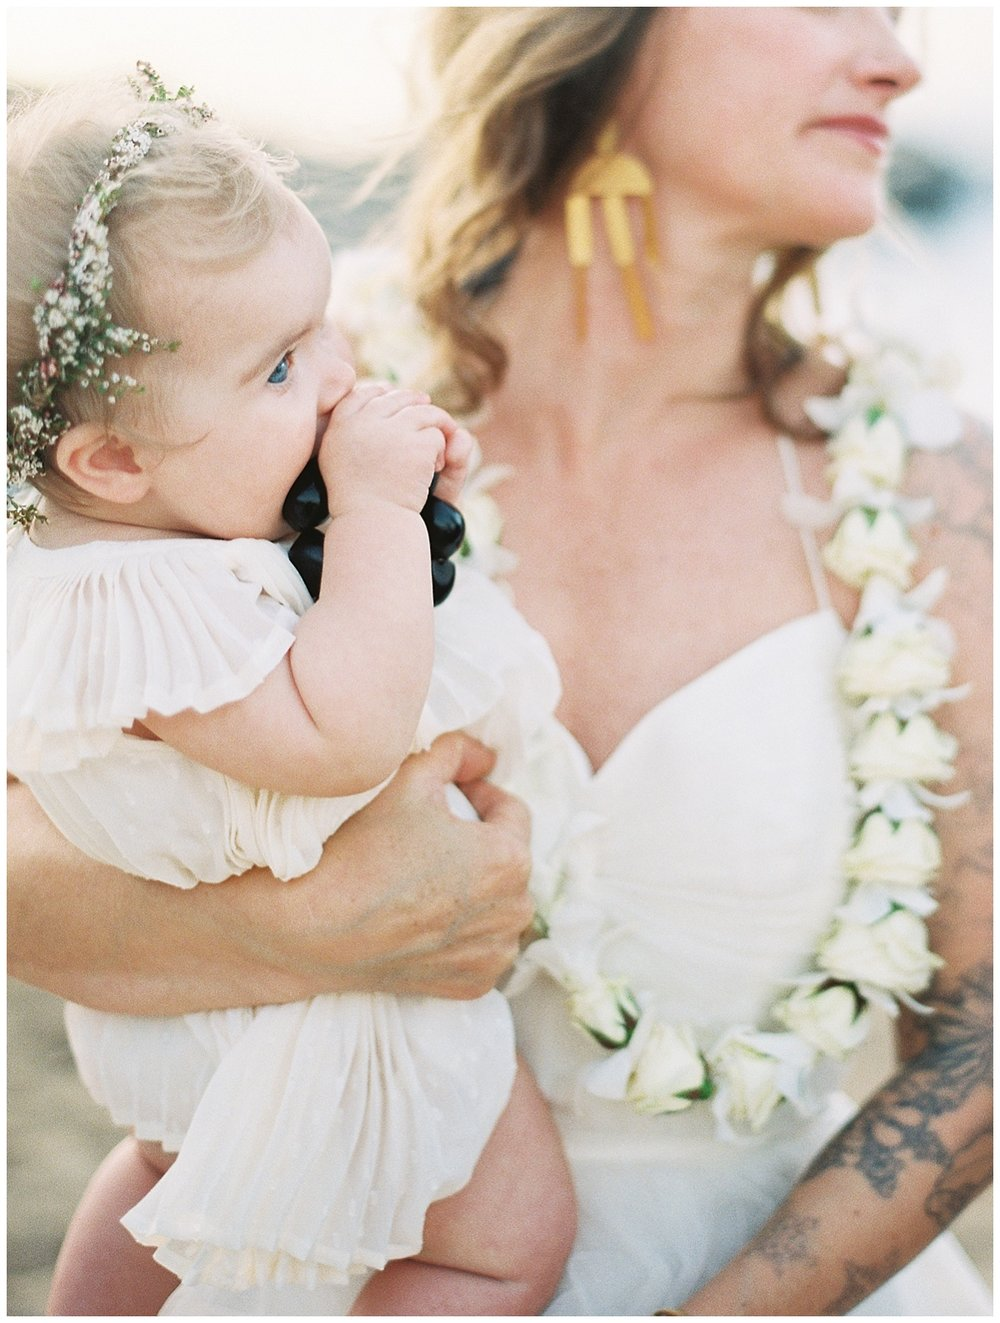 beach-elopement-maui-bride-holding-baby-daughter-white-flowers.jpg